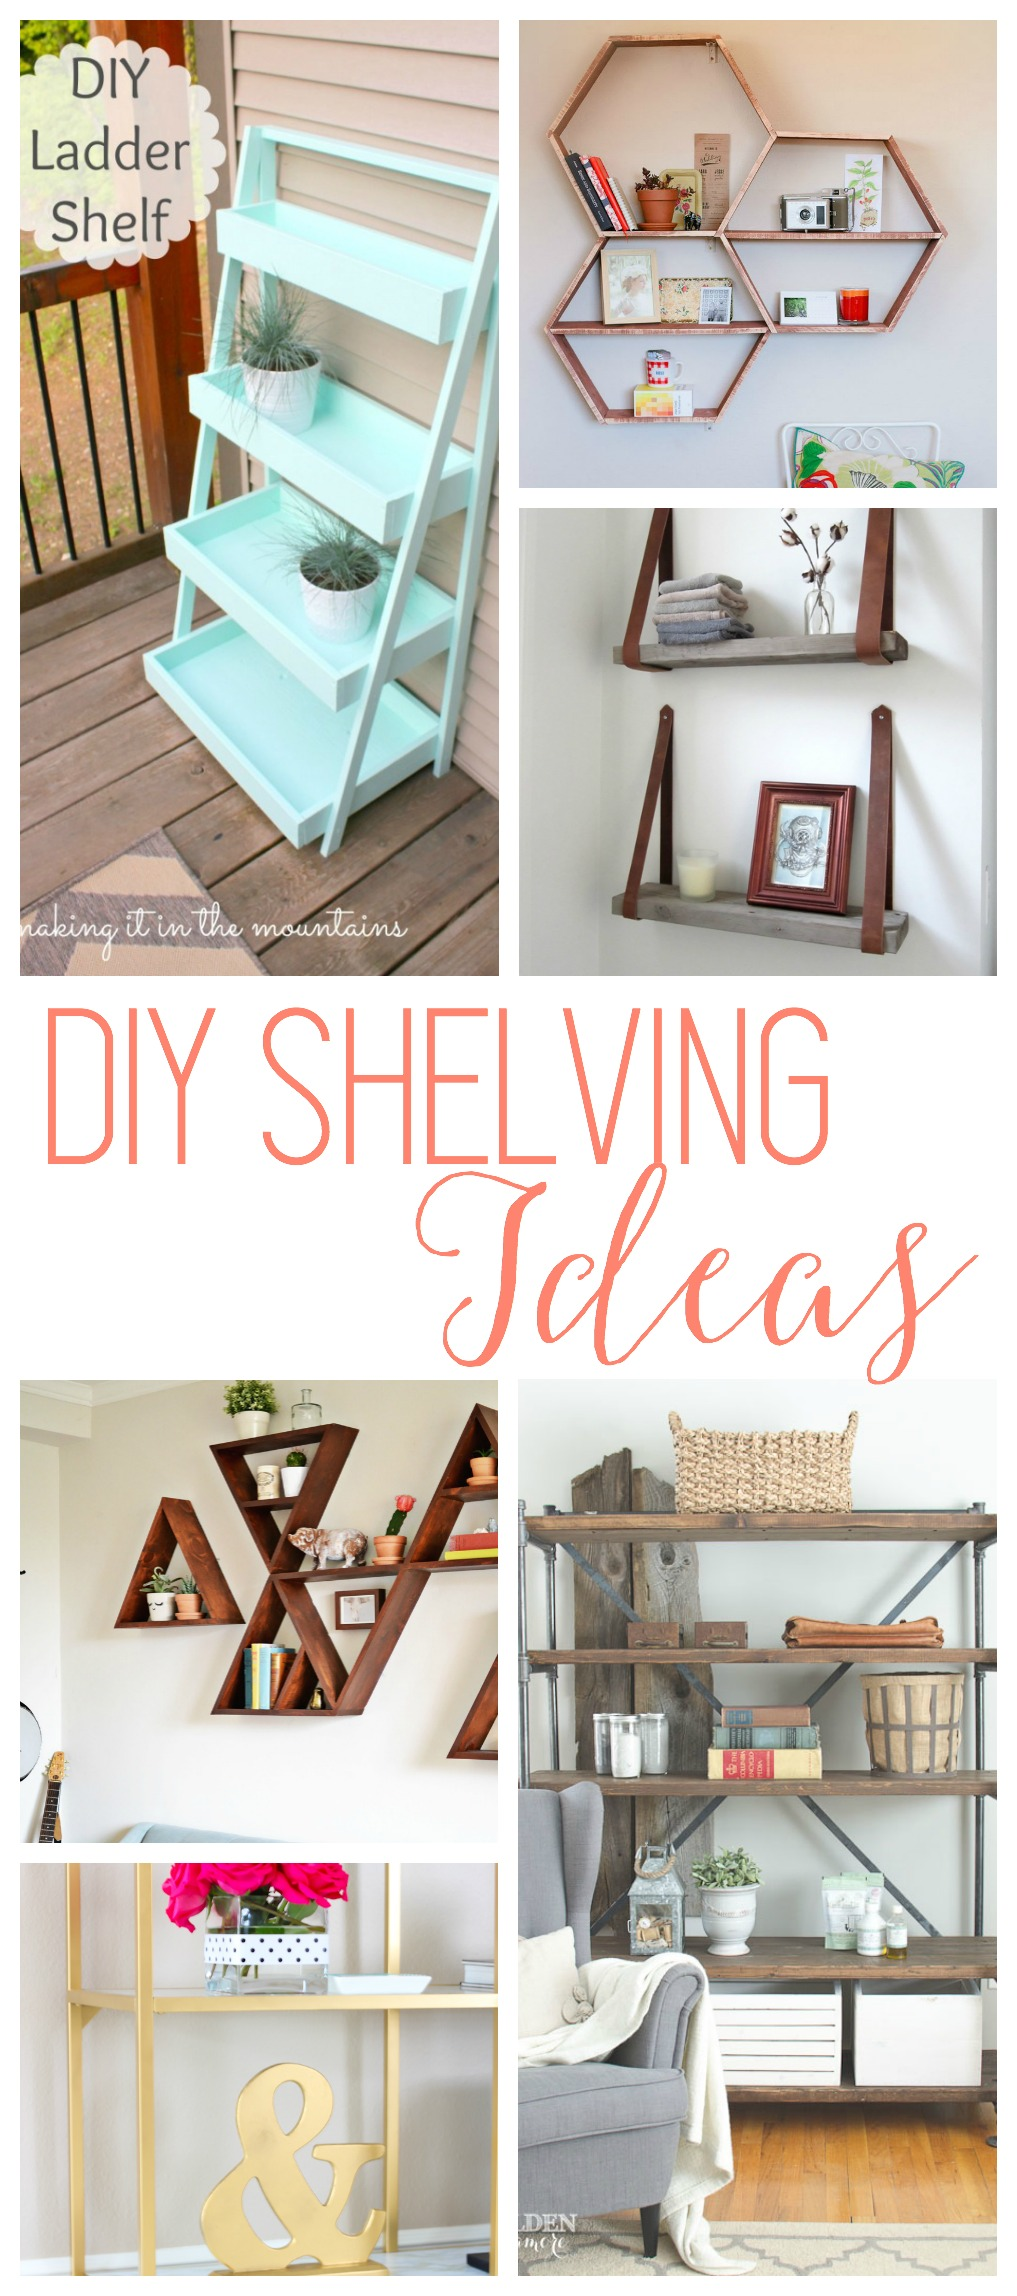 Diy shelves 18 diy shelving ideas Home ideas